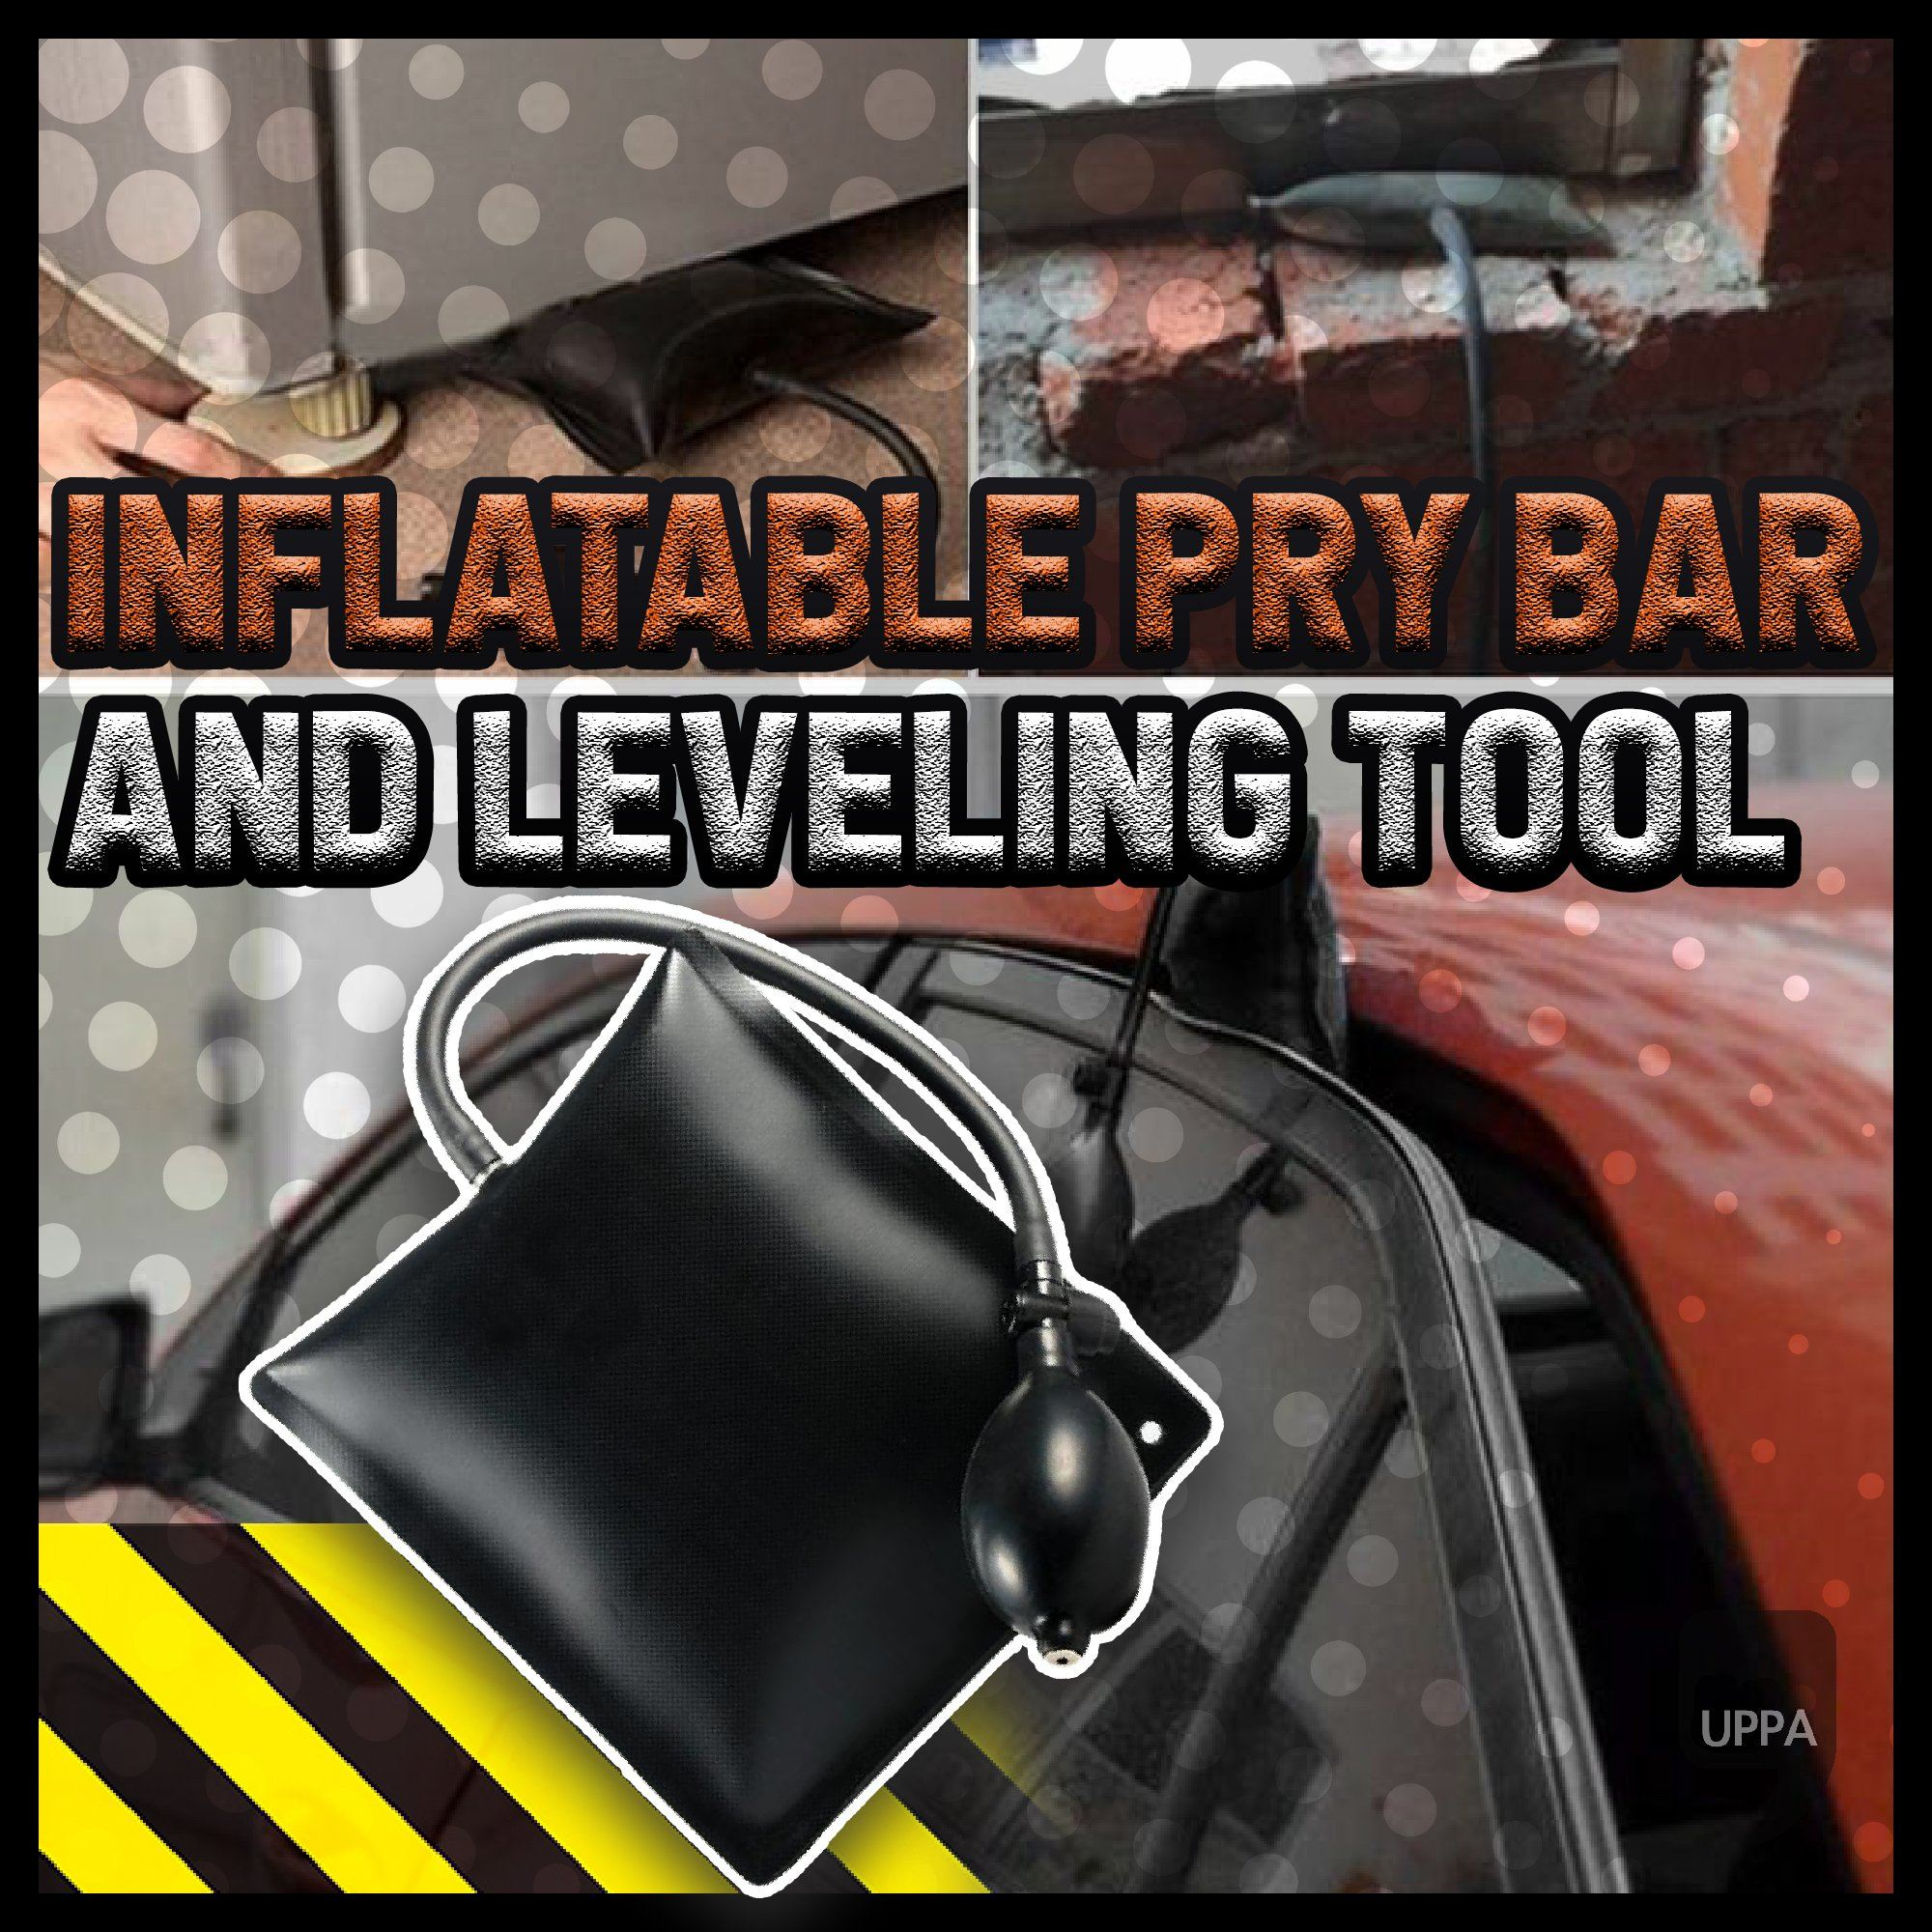 Inflatable Pry Bar and Leveling Tool